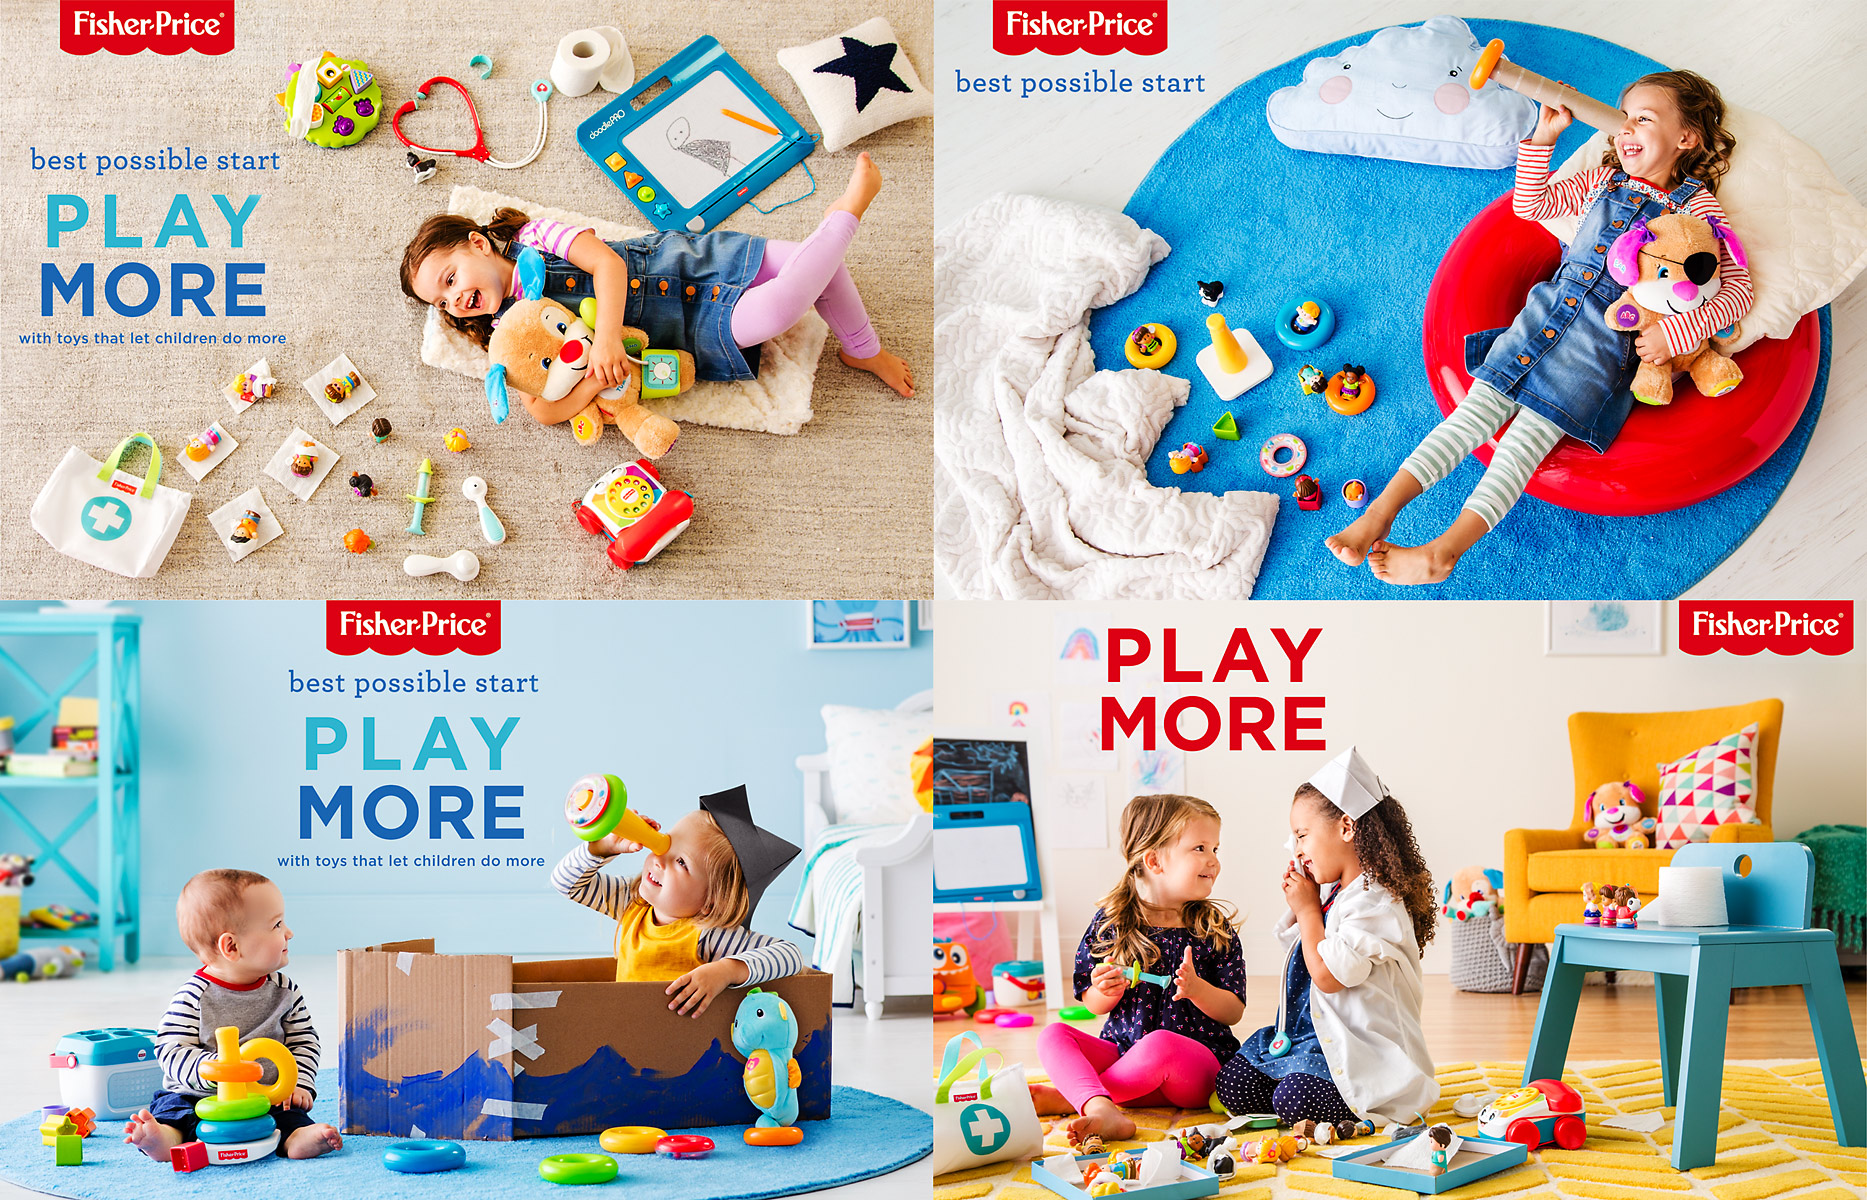 fisher-price-play_more-tears-4_up